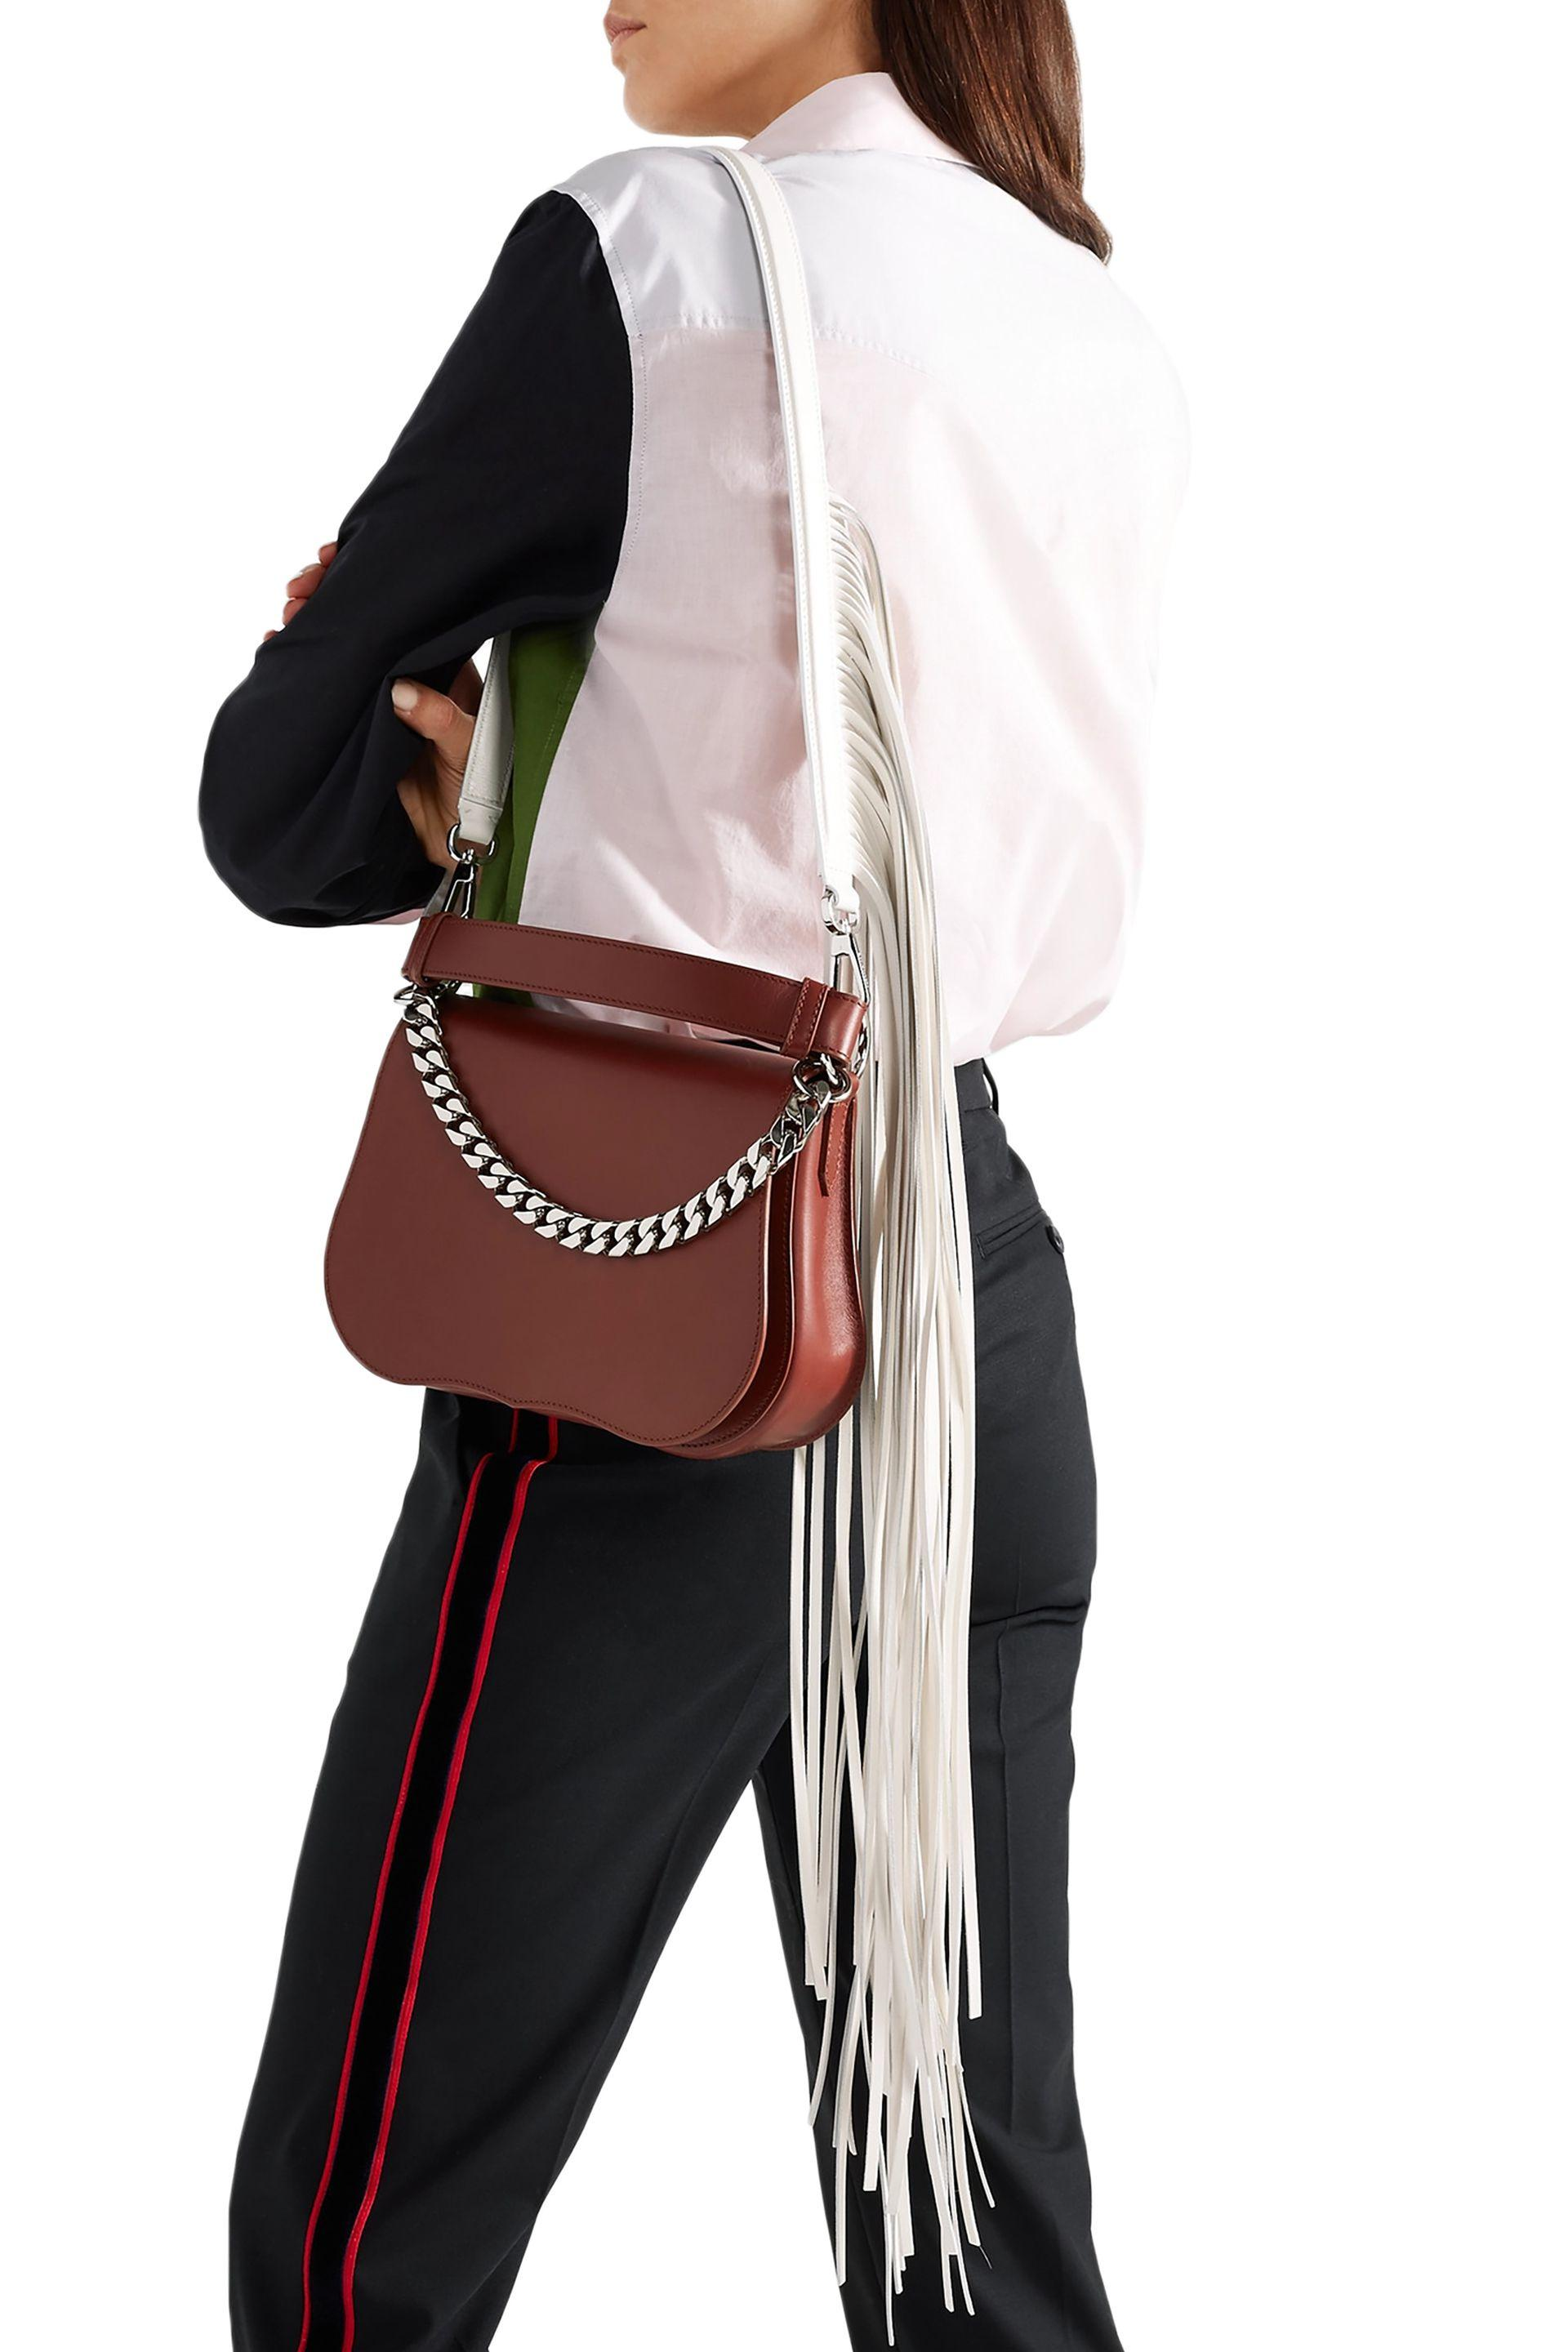 91c17bbe761 CALVIN KLEIN 205W39NYC - Woman Chain-embellished Fringed Leather Shoulder  Bag Brown - Lyst. View fullscreen